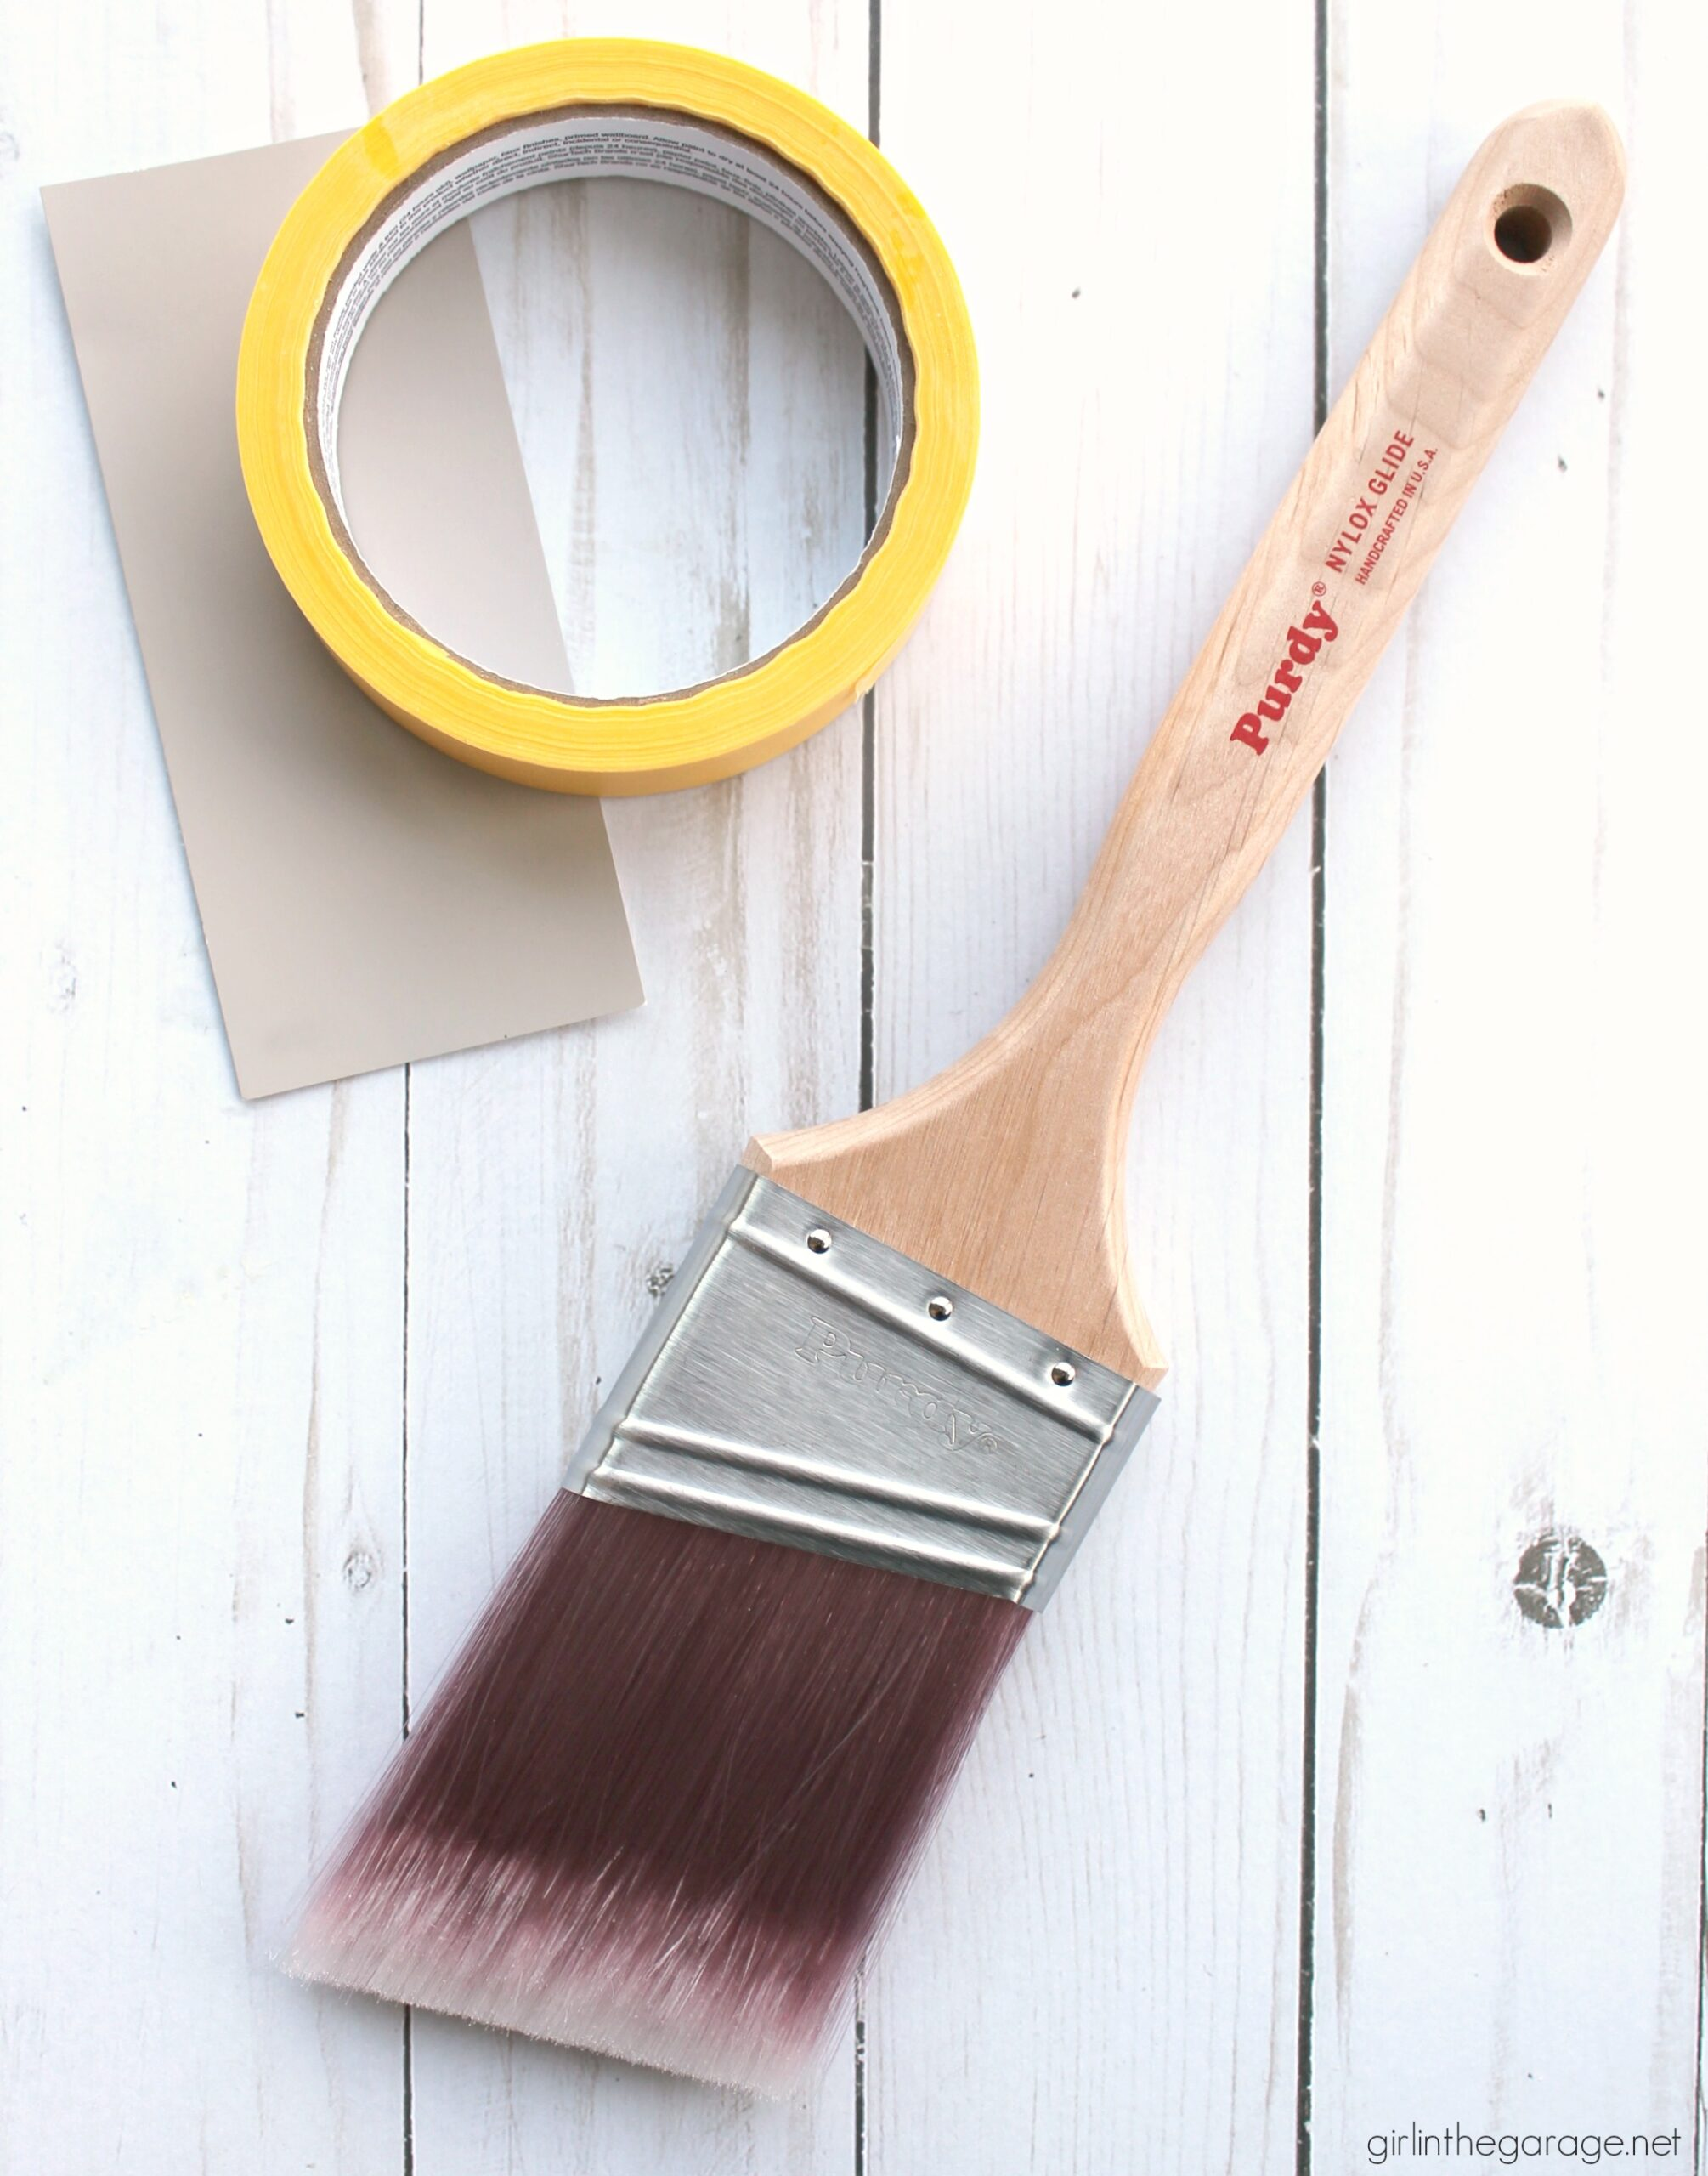 How to choose the right paint brush for your next project. Confidently paint furniture, walls, trim, brick, and cabinets with Purdy painting tools. #ad DIY painted furniture and decor ideas by Girl in the Garage